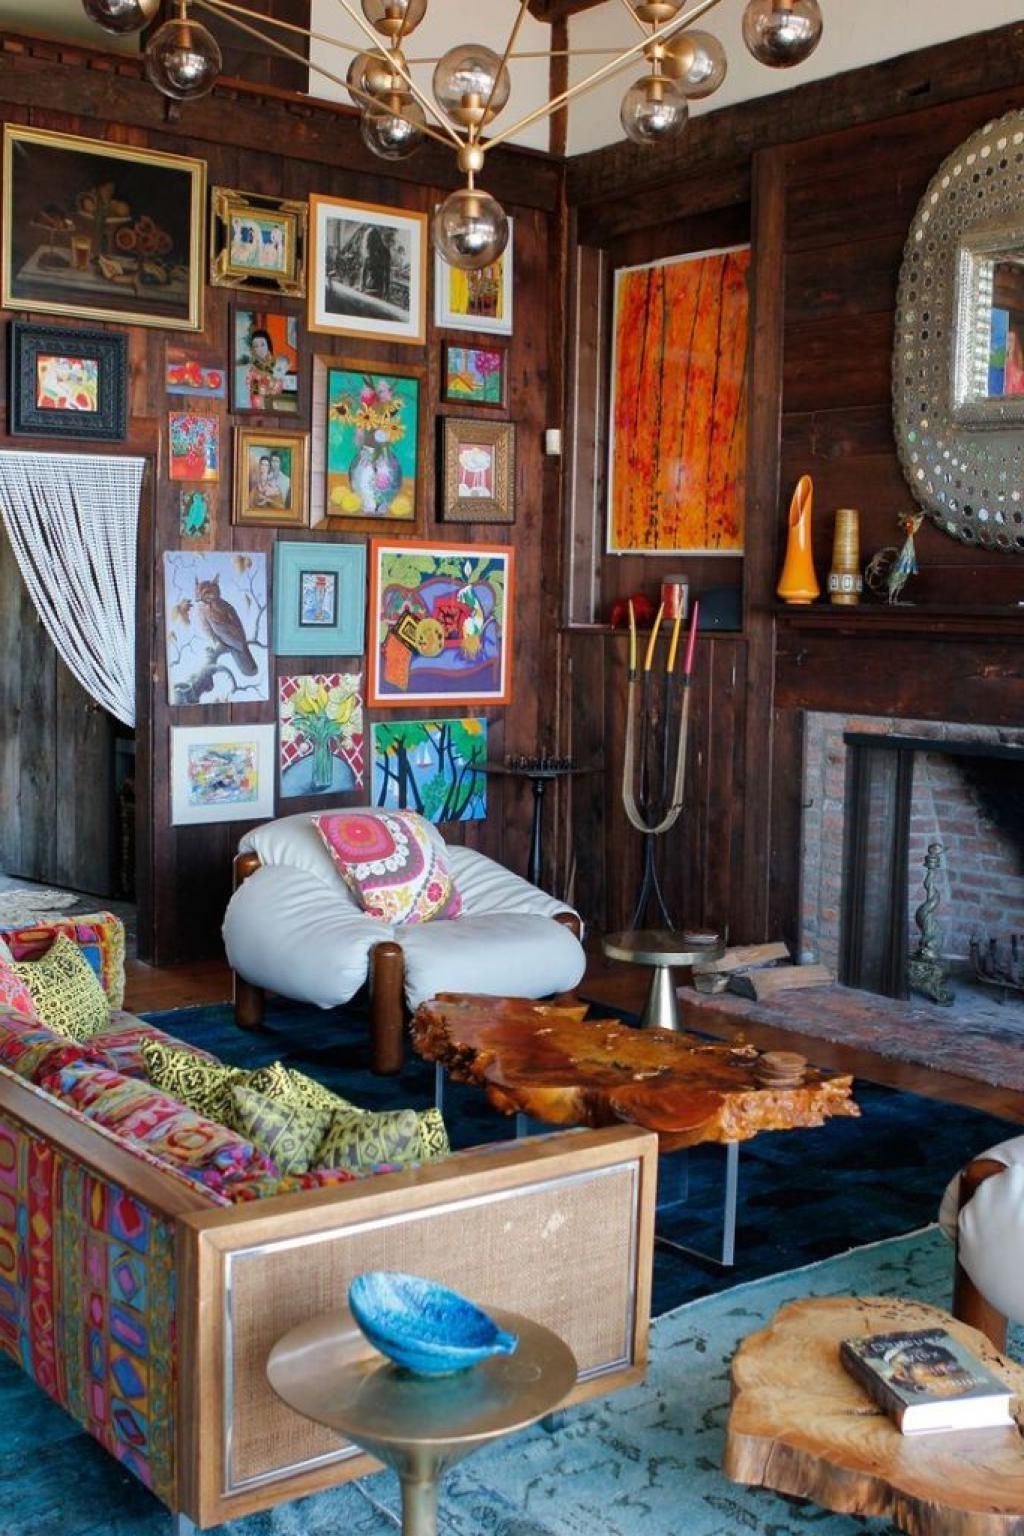 rustic eclectic room so colorful and cute with frame painting for